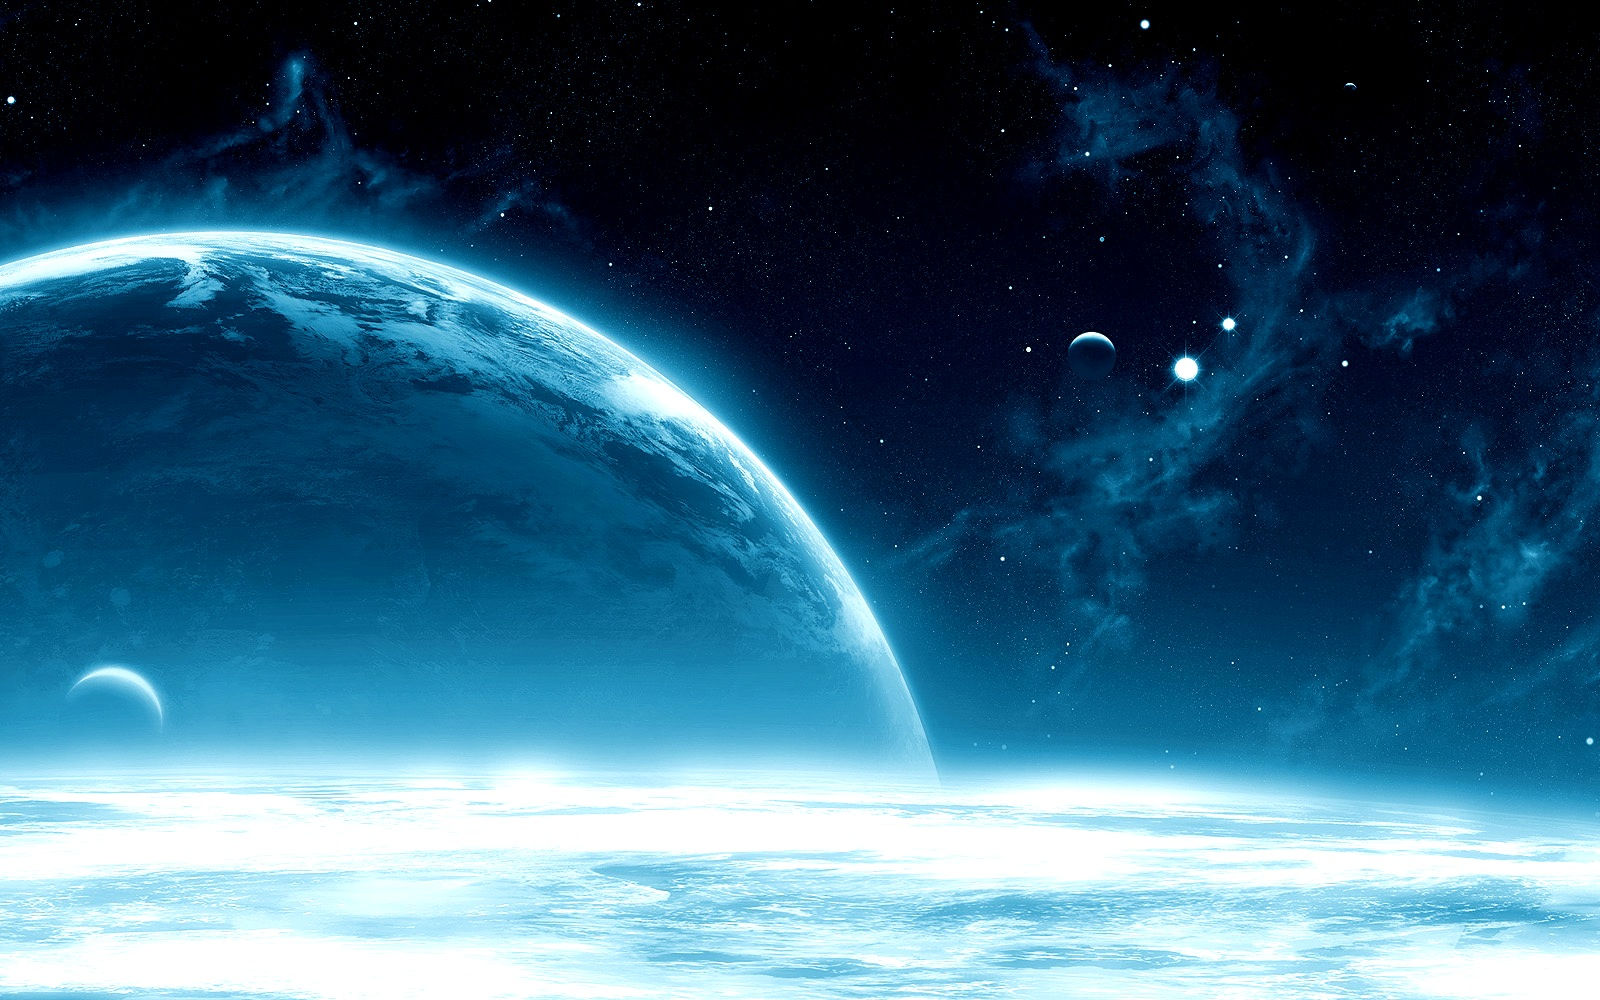 Endless Deep Space Google Skins Endless Deep Space Google Backgrounds 1600x1000